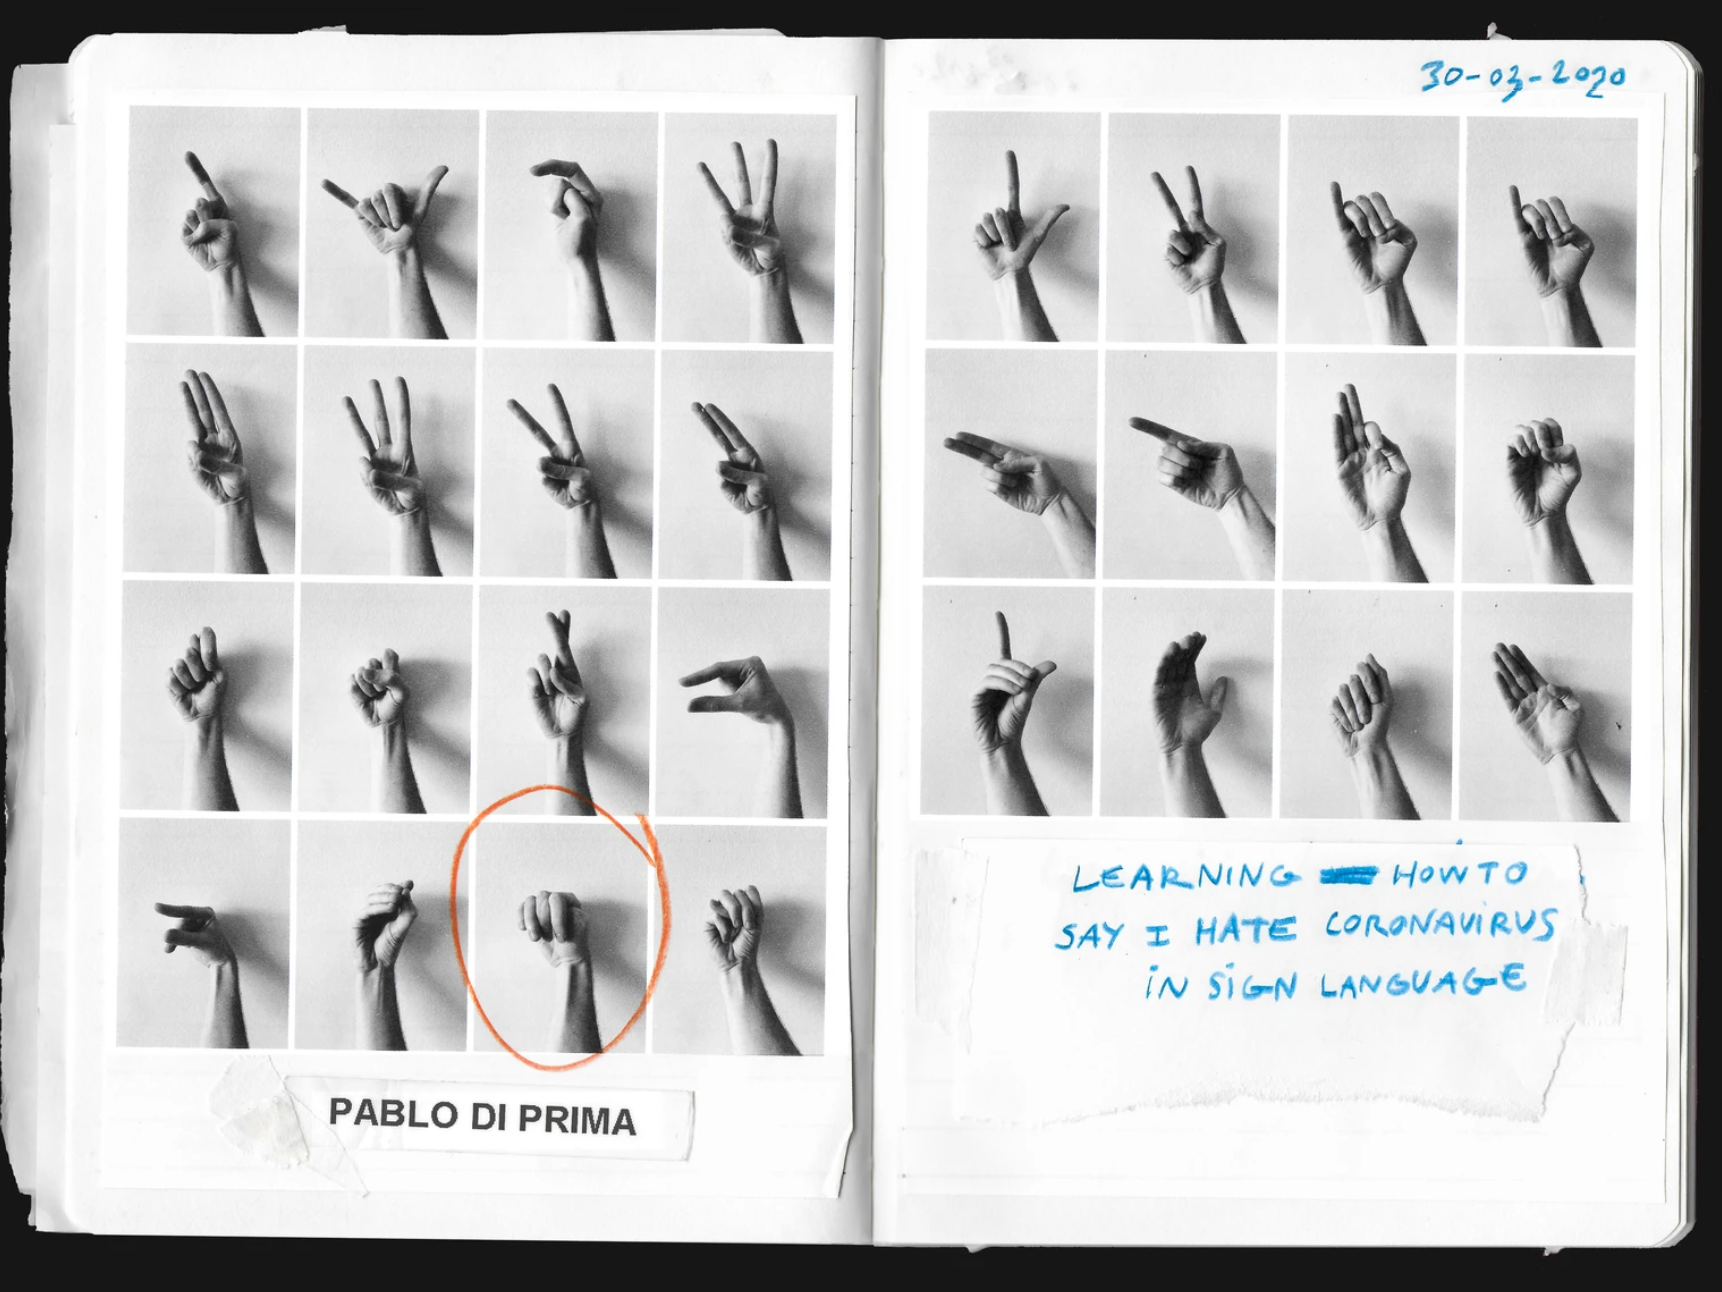 Collection of black and white phogtographs of hands making different signs